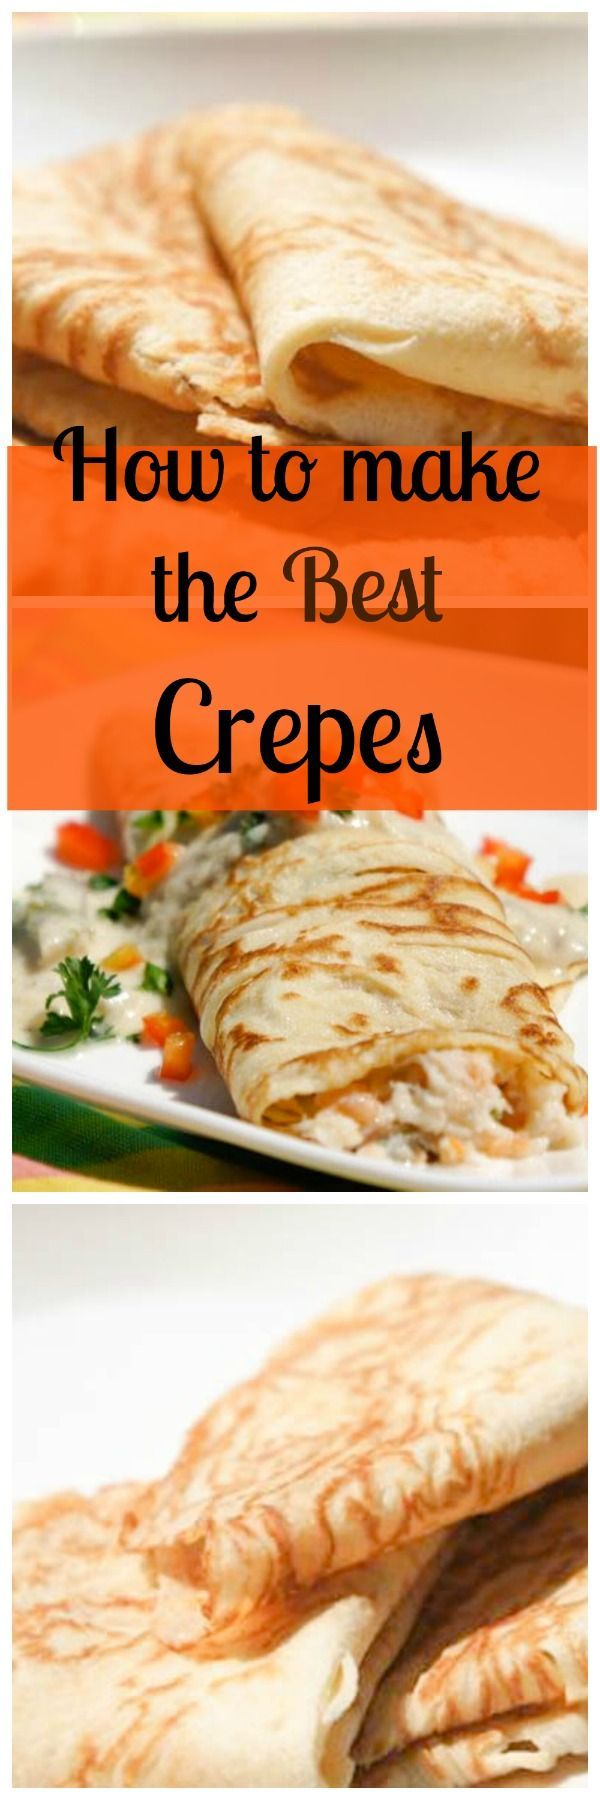 How to Make the Best Crêpes - used this recipe to go with my seafood crepes. Easy and delicious.